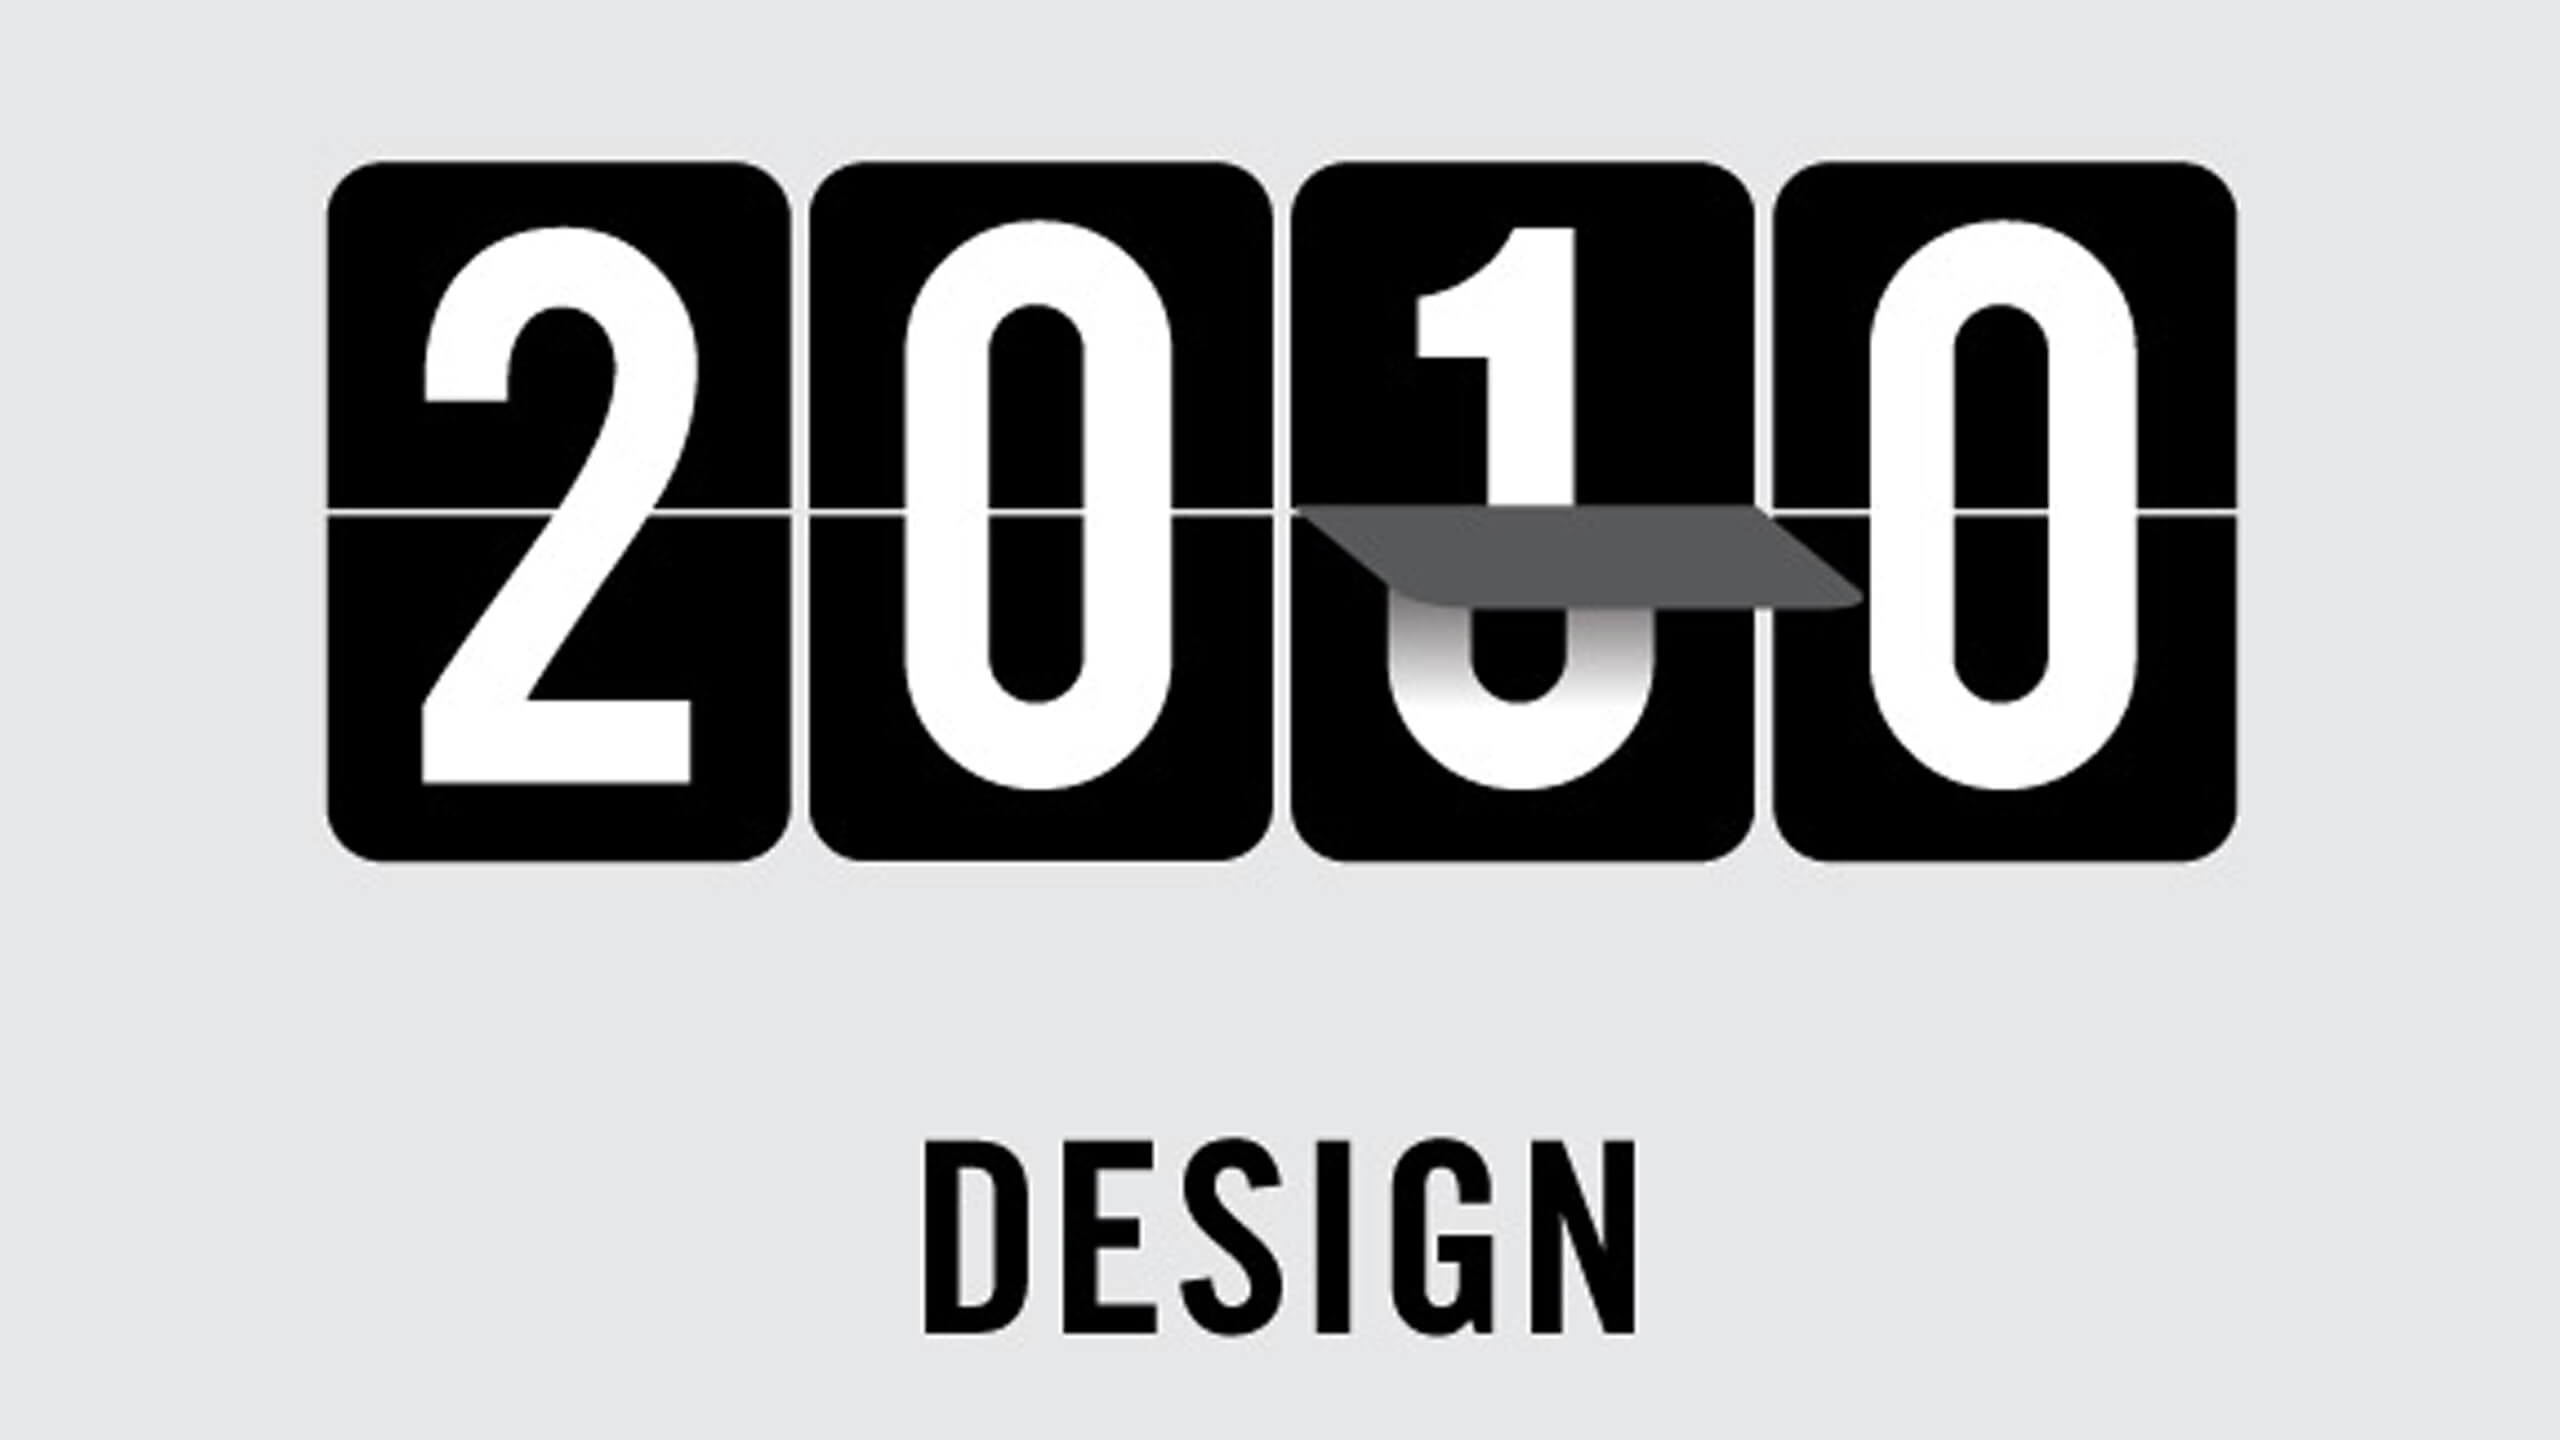 THE DECADE IN DESIGN